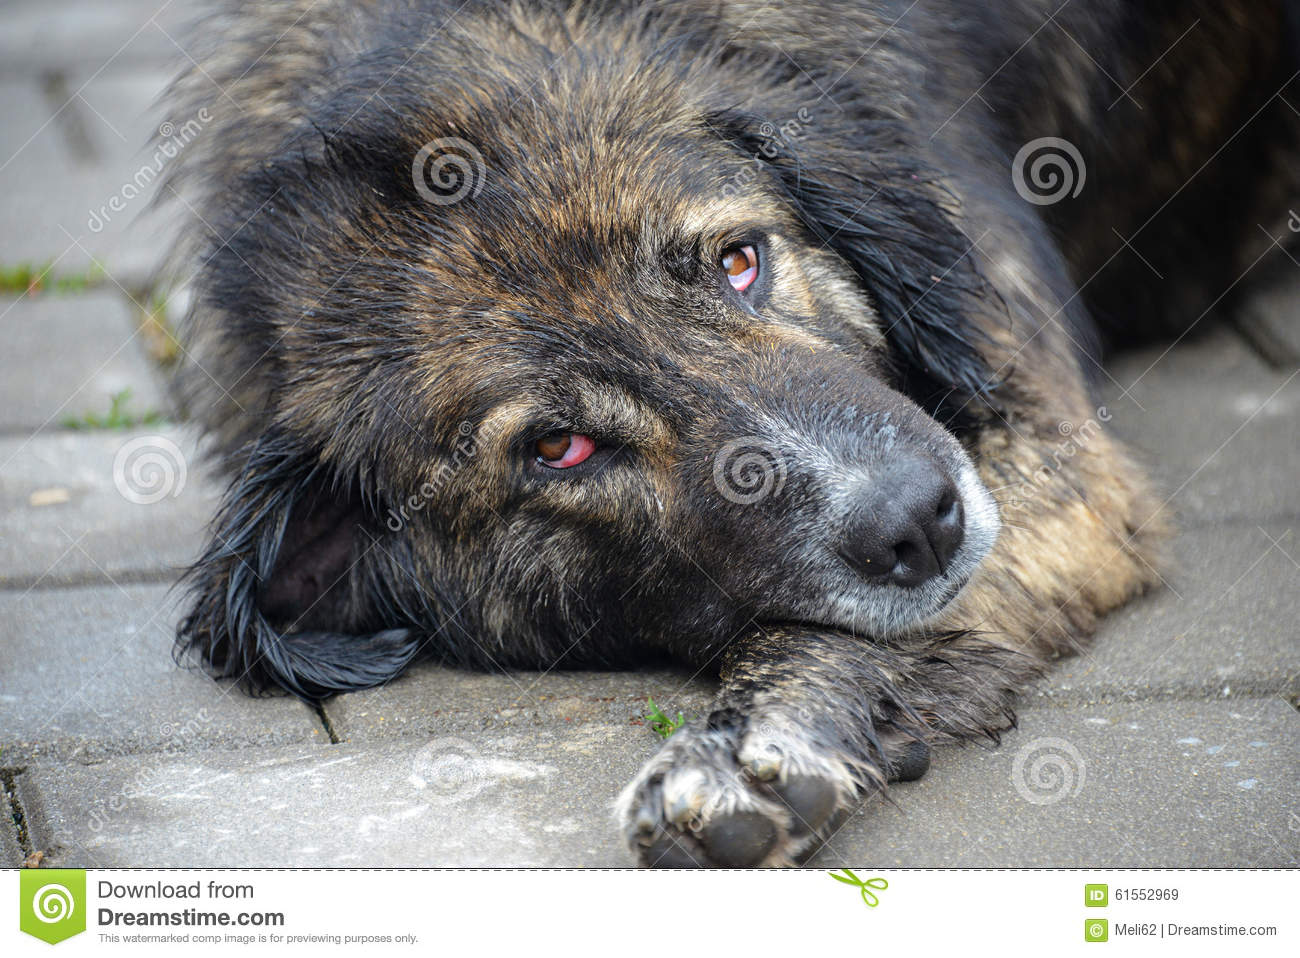 Stray Dog Stock Photo - Image: 61552969